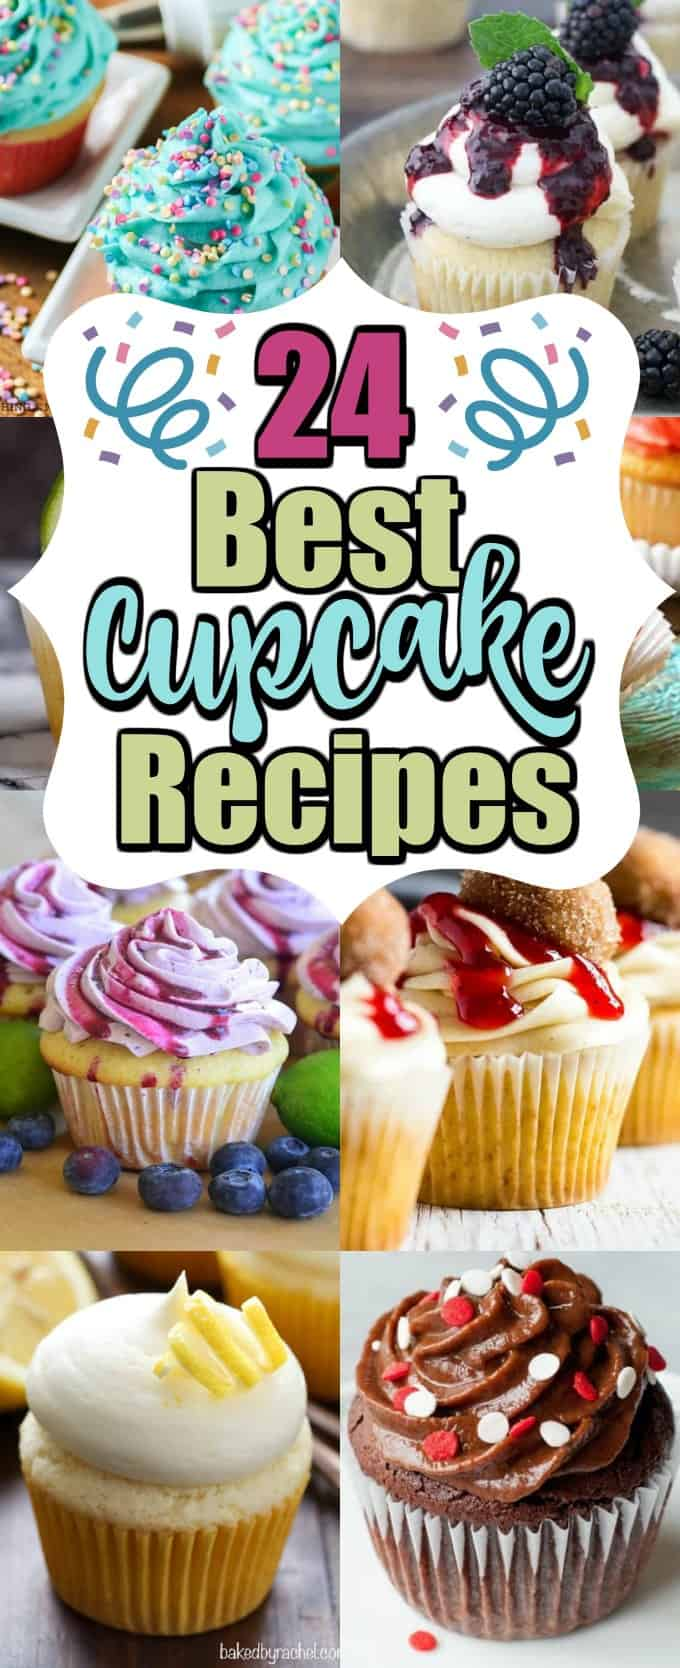 These 24 Best Cupcake Recipes are perfect for any celebration. We have lots of cupcakes topped with so many flavors it will be hard to choose!! #cupcakerecipes #cupcakes